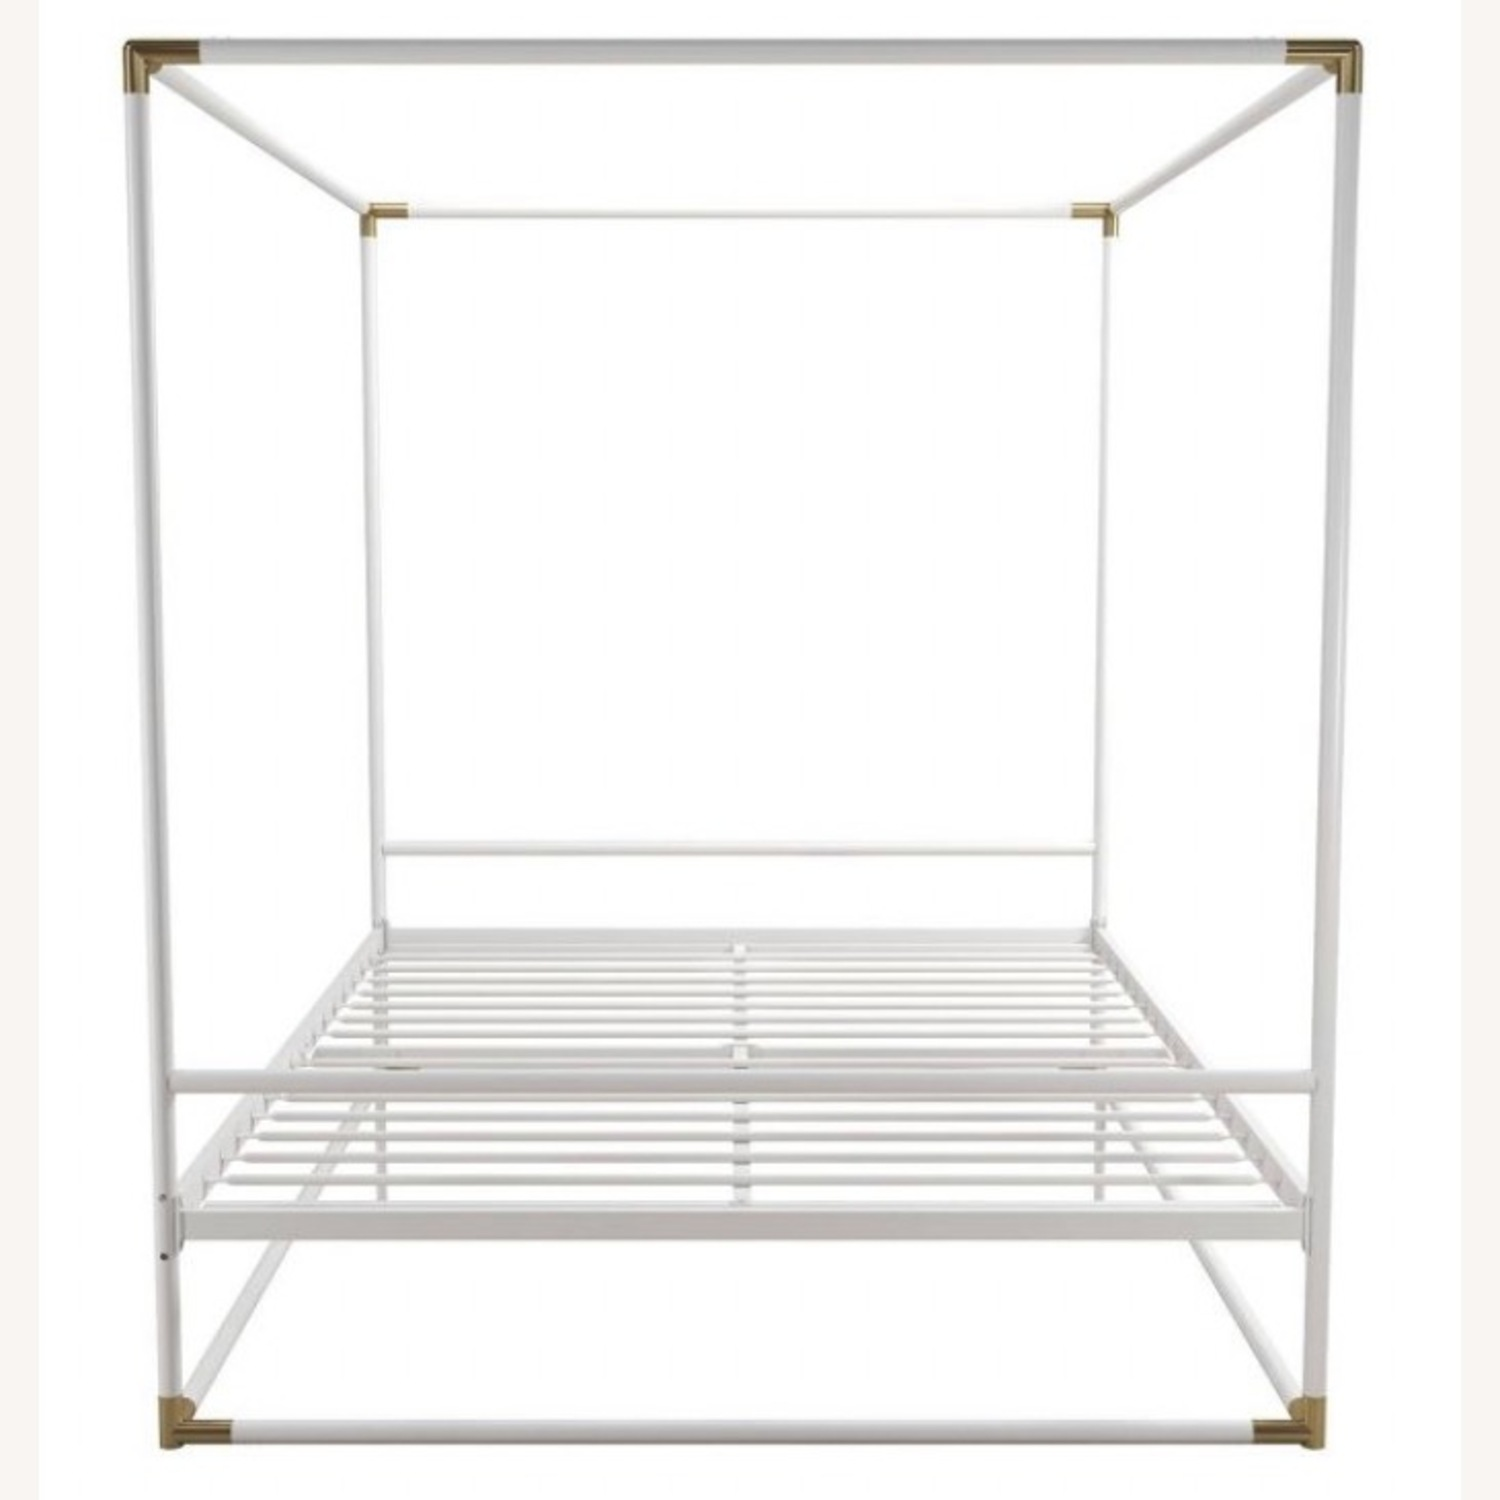 Wayfair White & Gold Metal Full Sized Canopy Bed - image-1